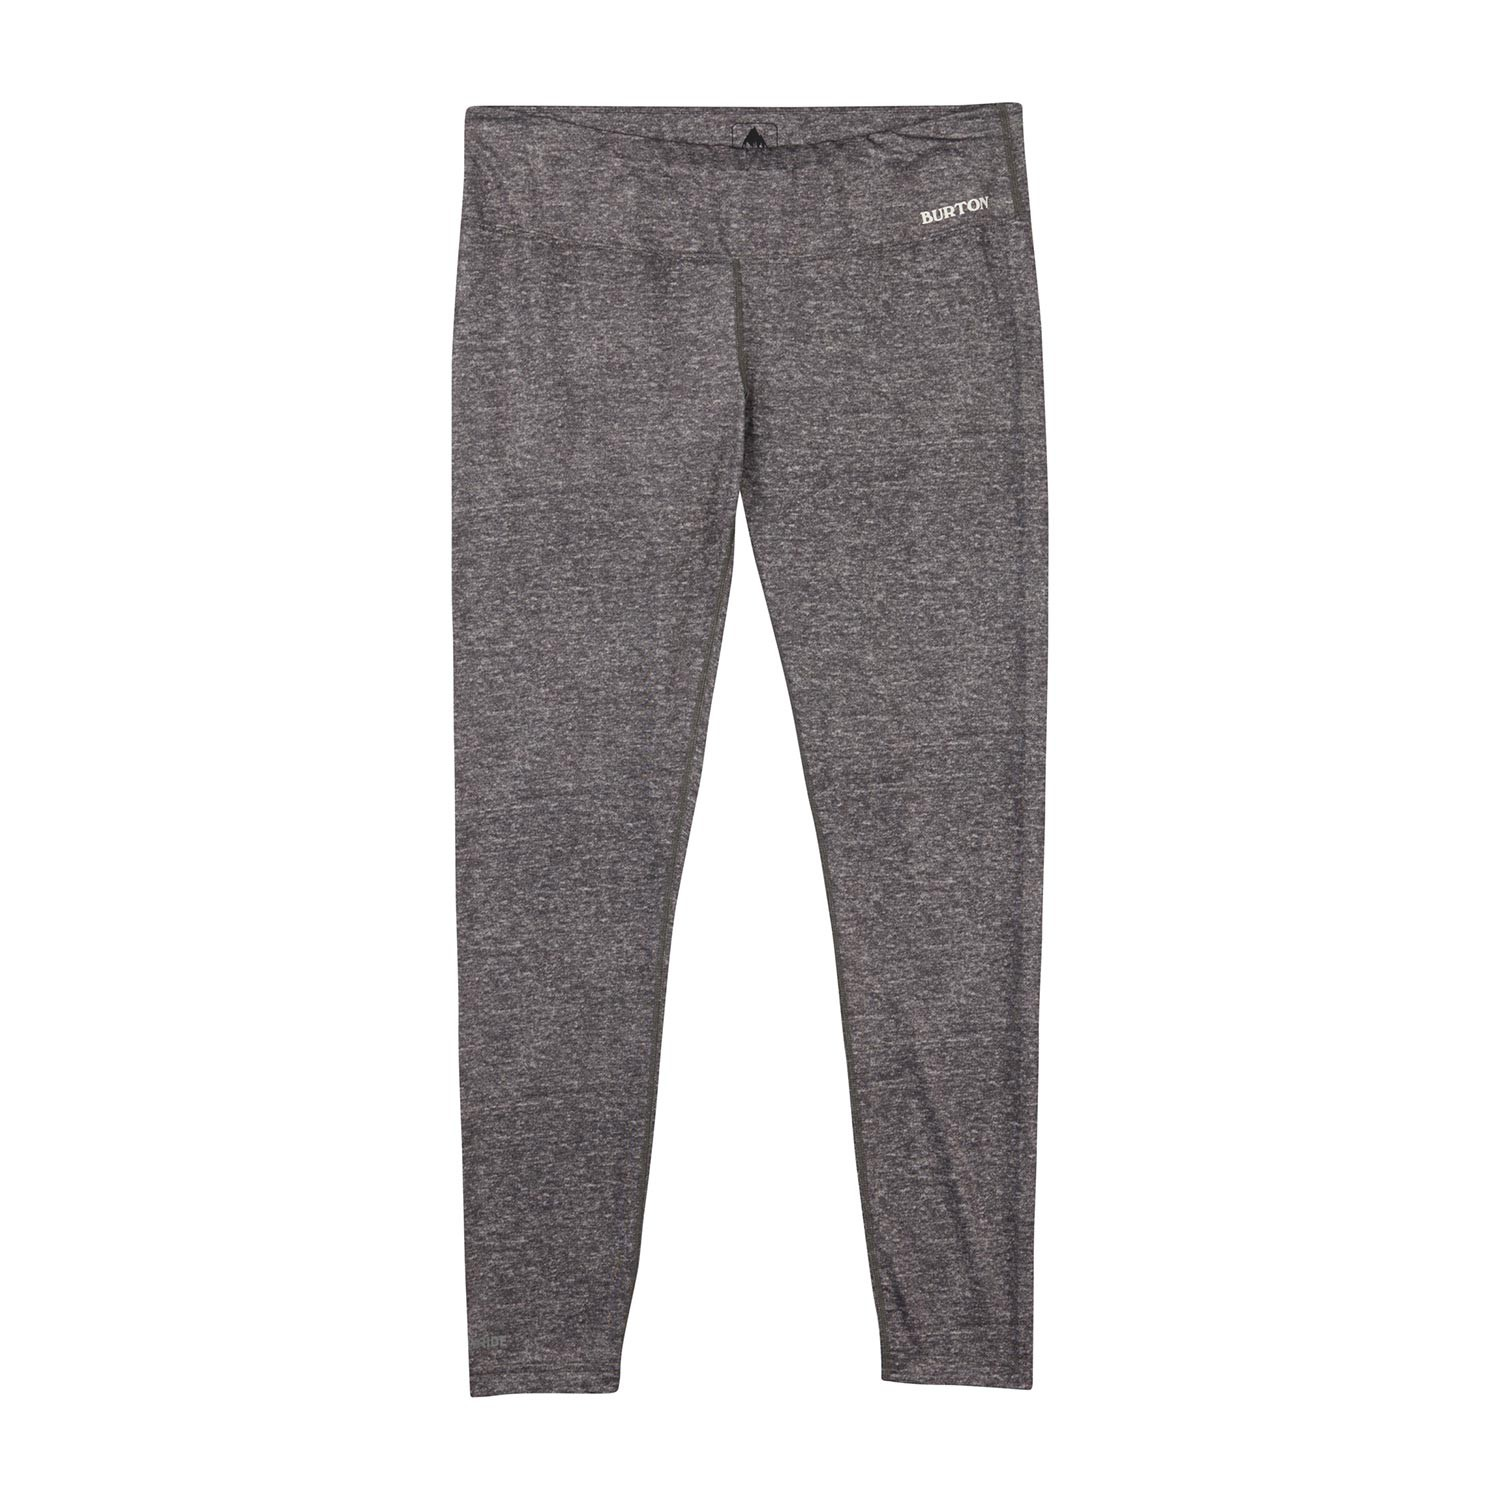 Spodky Burton Wms Lightweight Pant monument heather